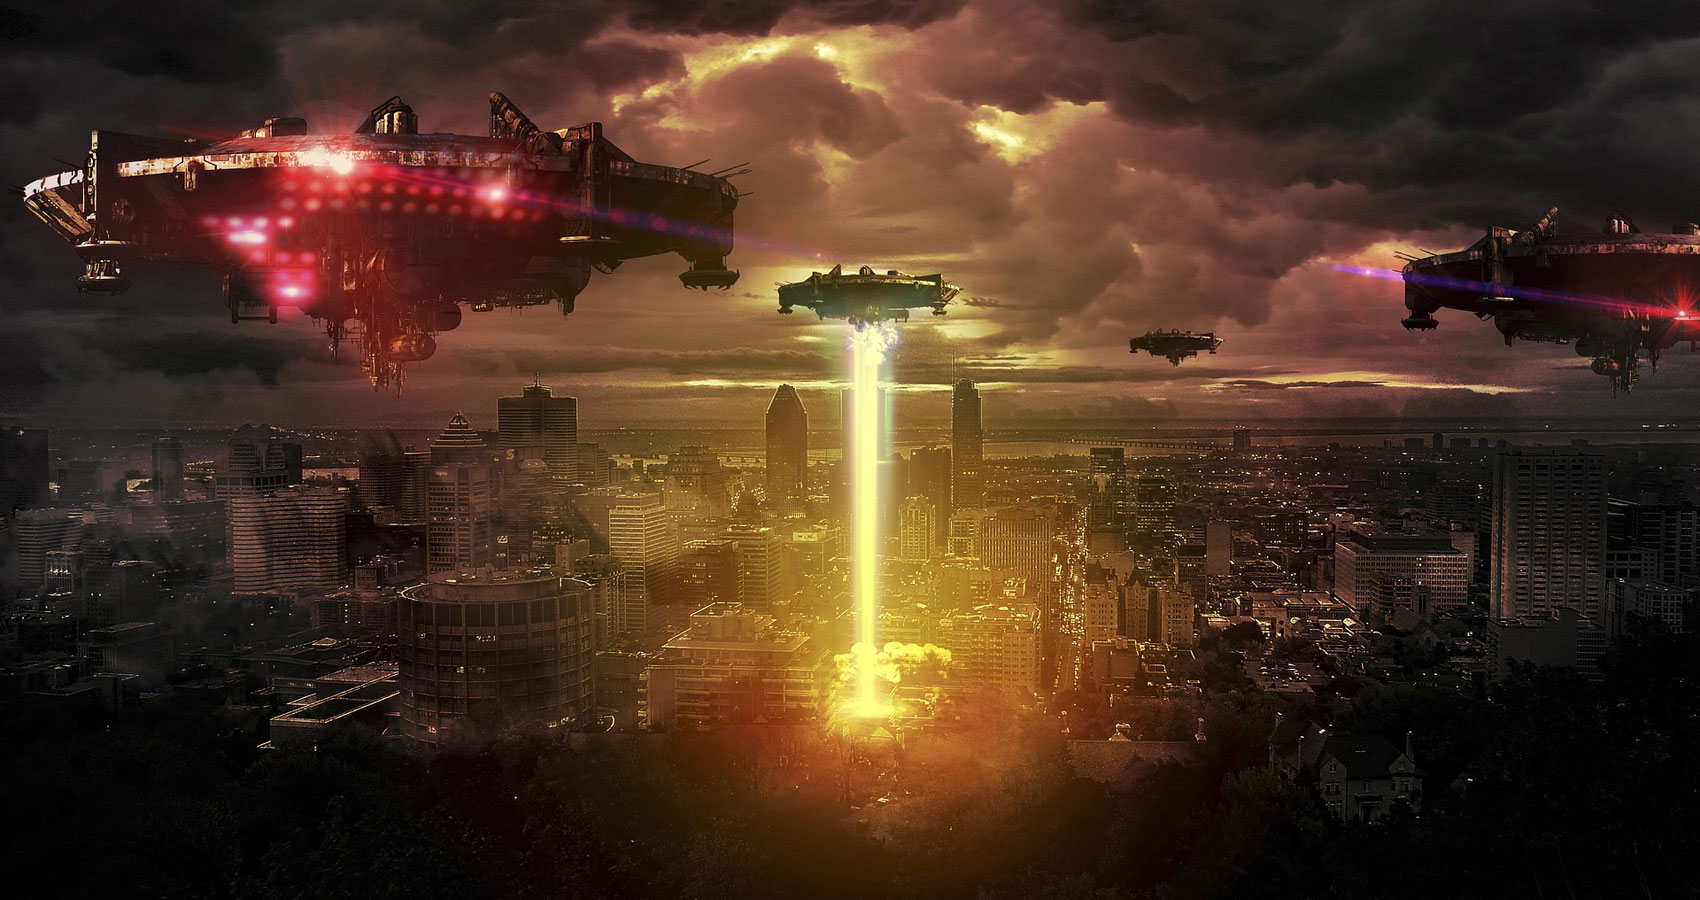 Alien Invasion, written by Jonel Abellanosa at Spillwords.com